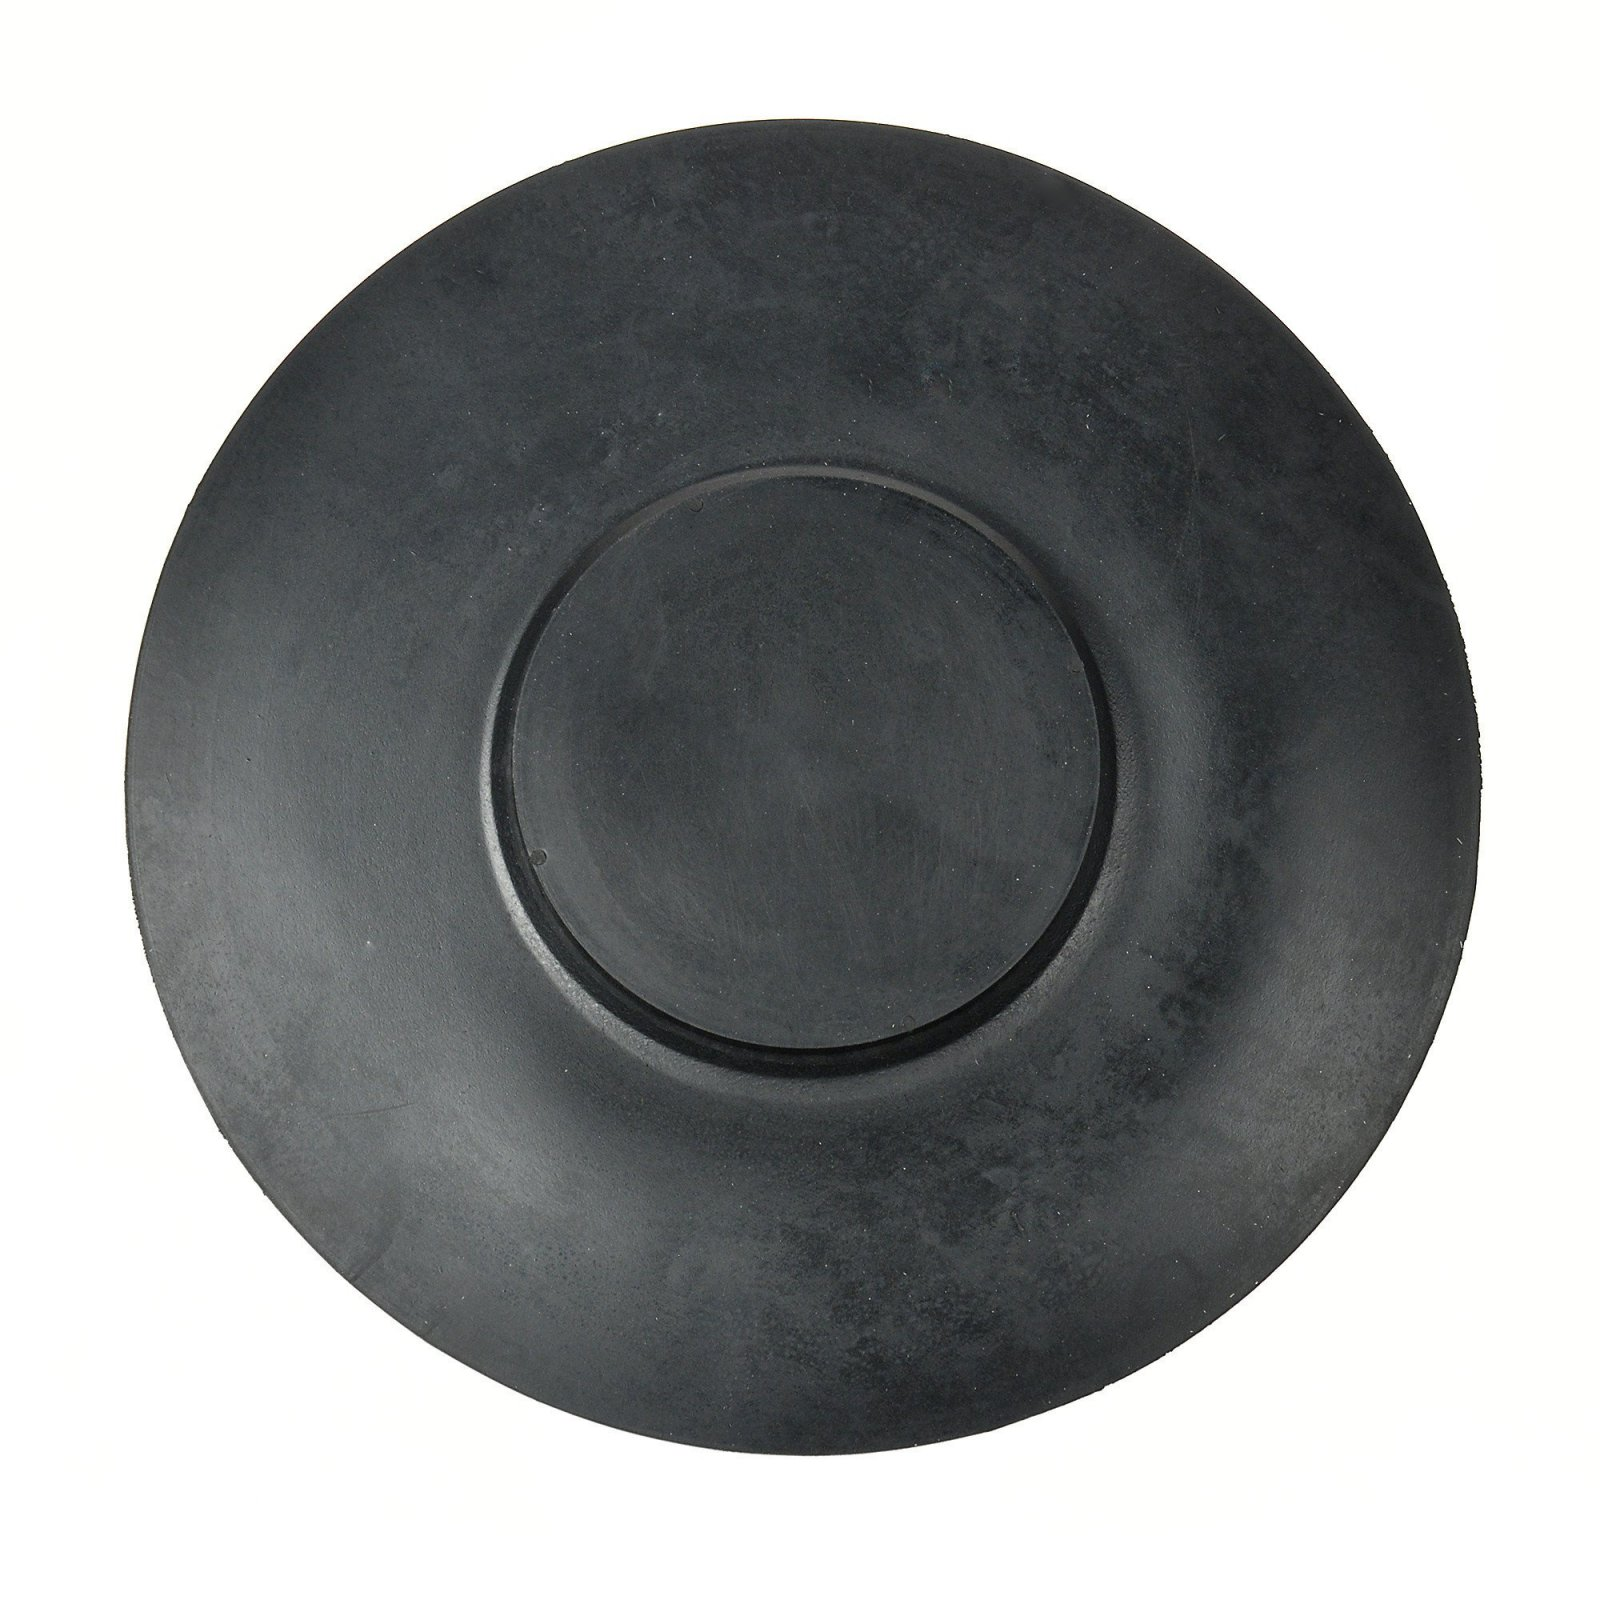 Cannon PP-1 Gladstone Style Practice Pad